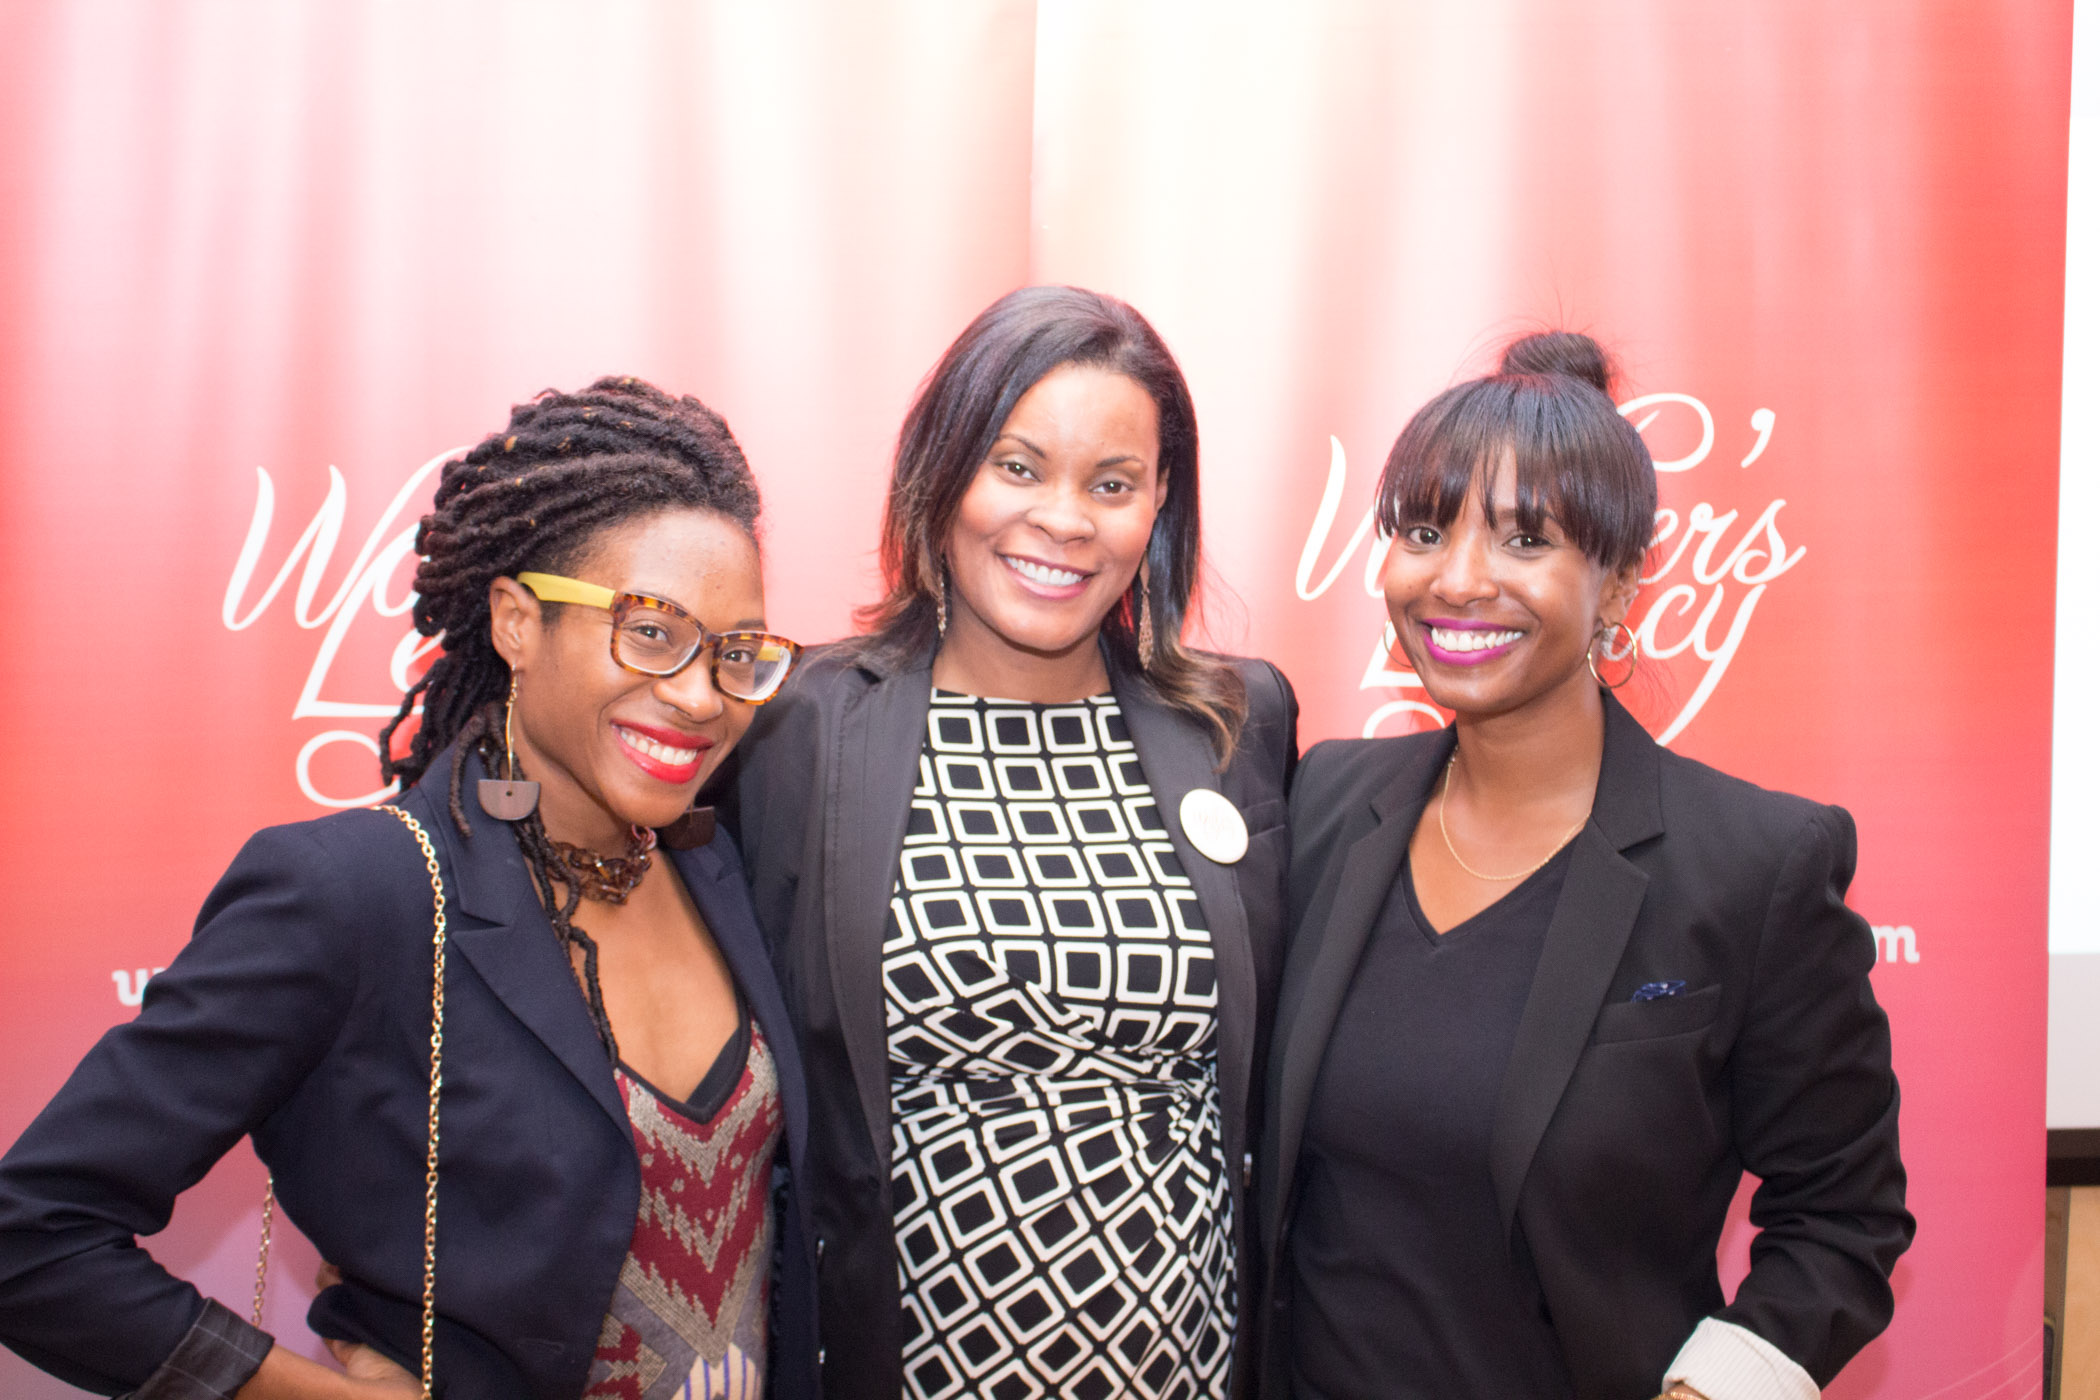 Honoree, Geneen Harston, Vice President of News, Rivet Radio, & guests enjoy the Chicago reception.